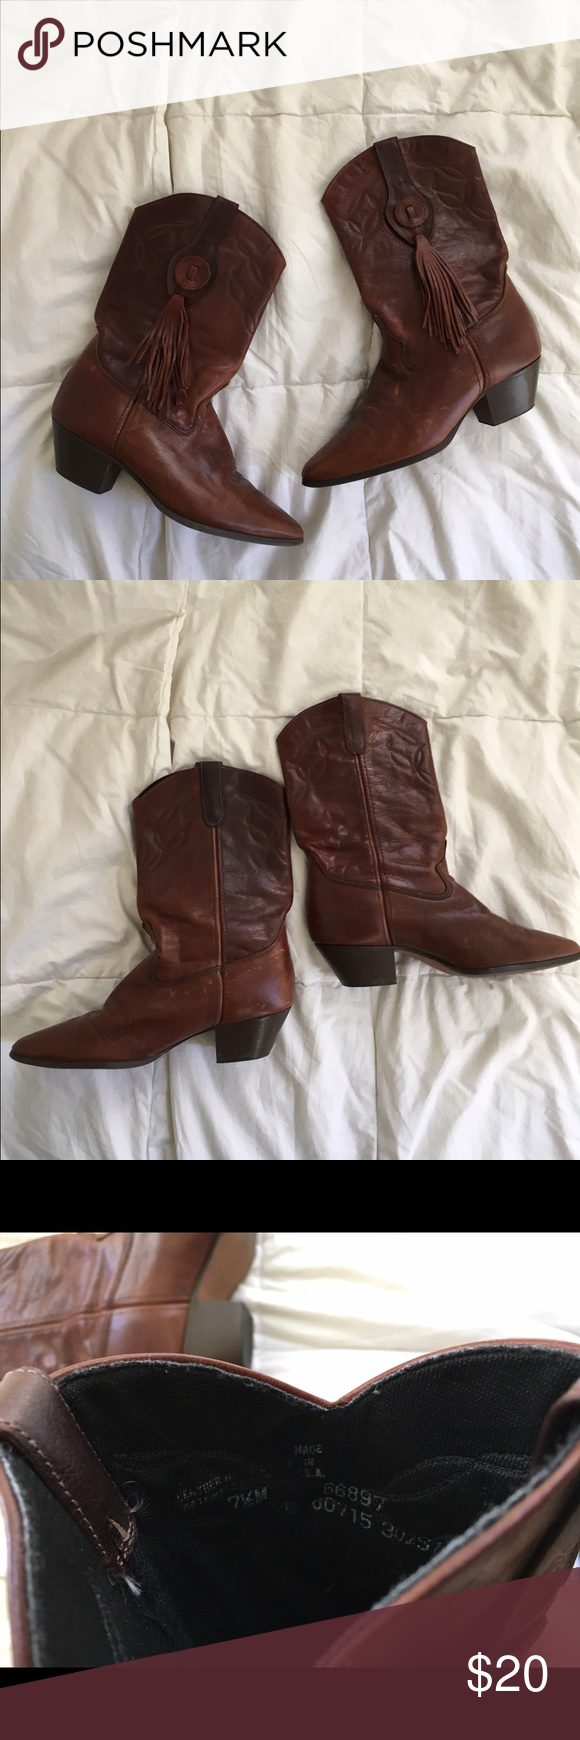 Cowboy boots Size 7.5, all wear is shown. Shoes